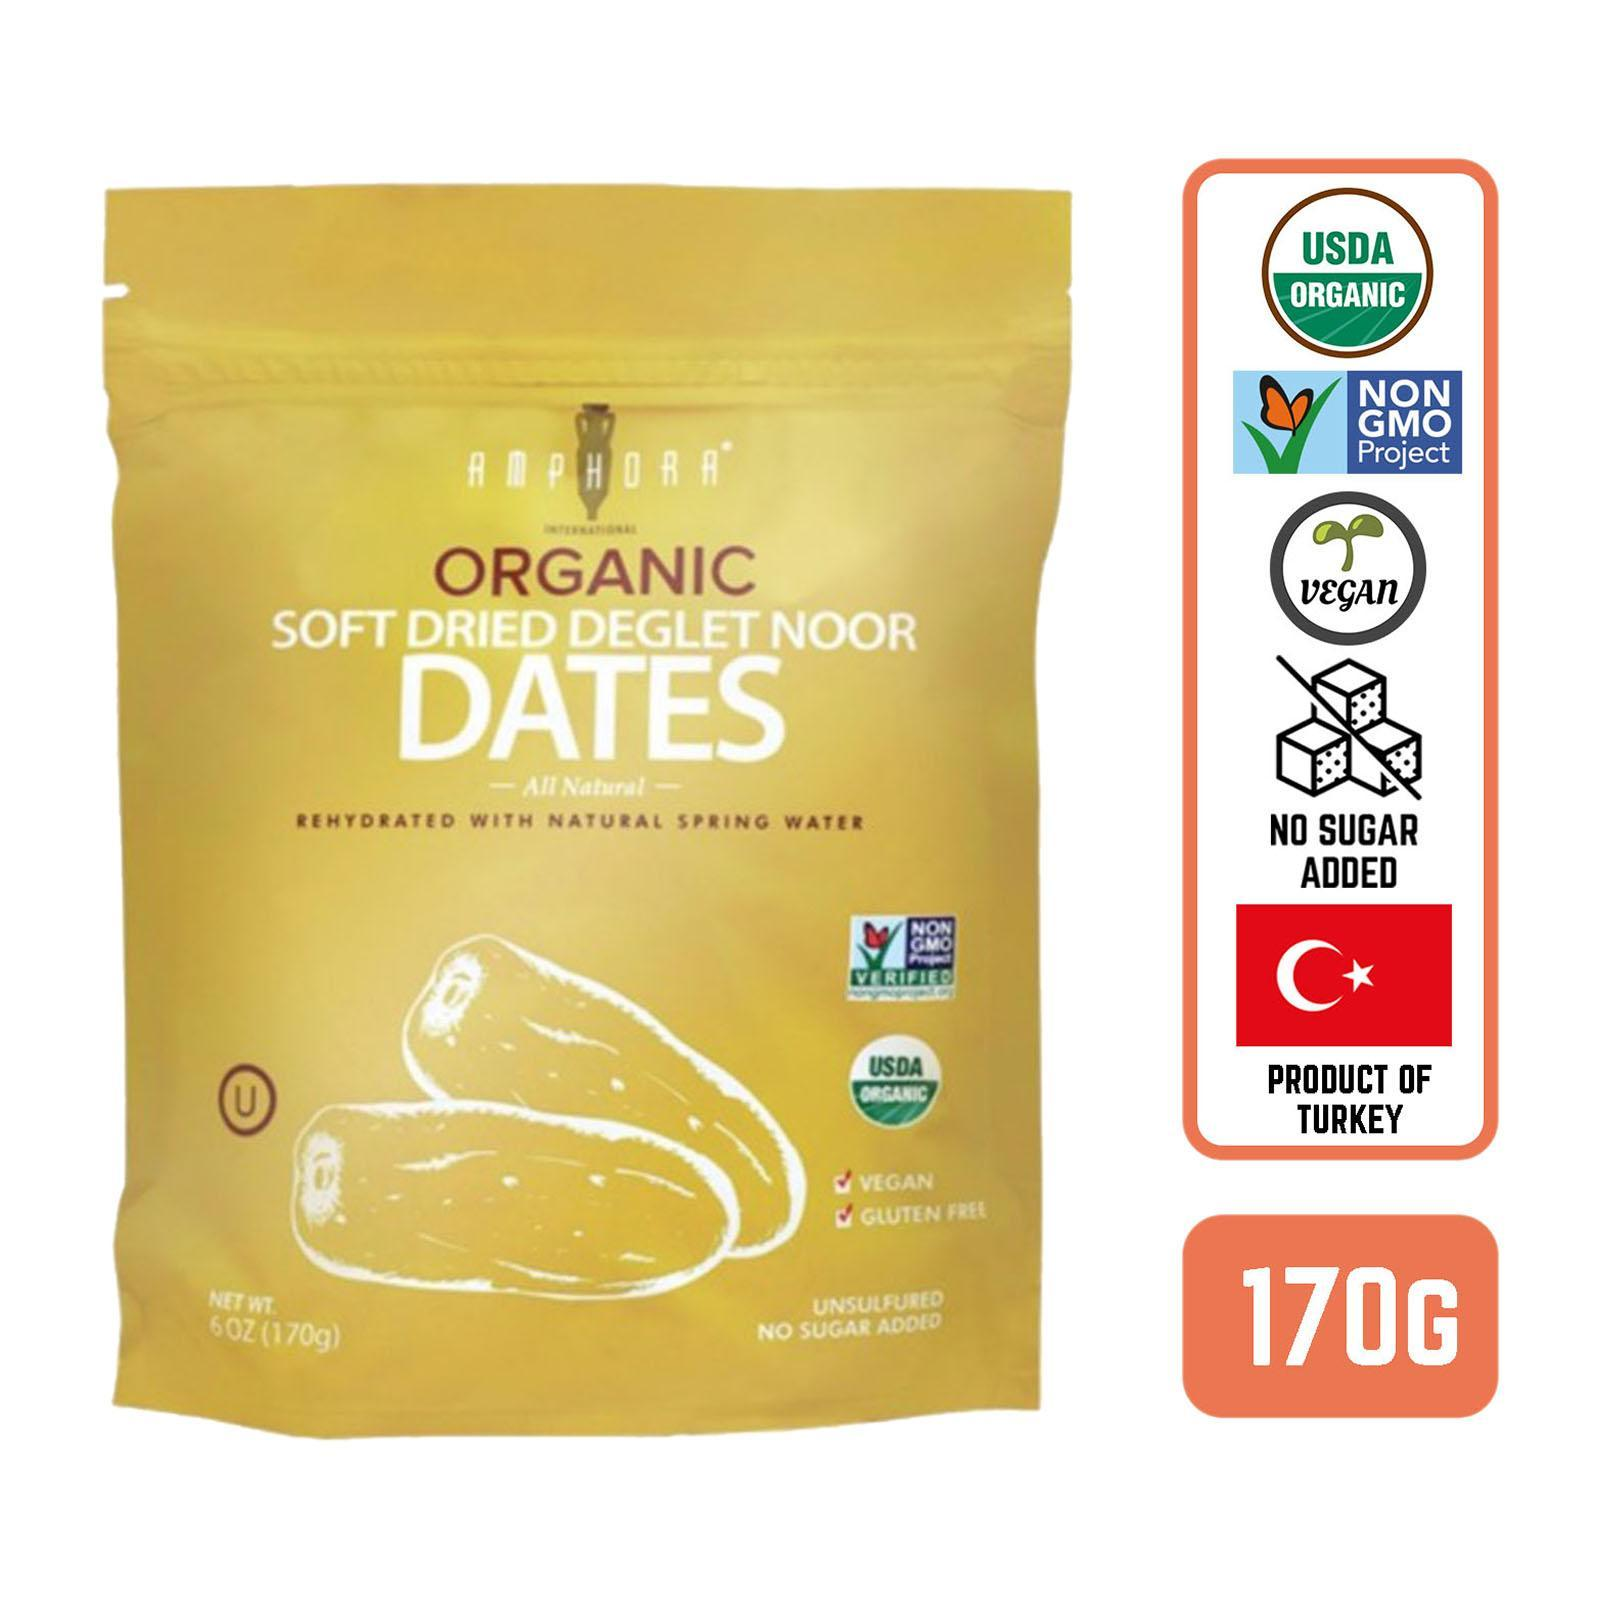 Amphora Soft Dried Organic Dates Deglet Noor - By Foodsterr